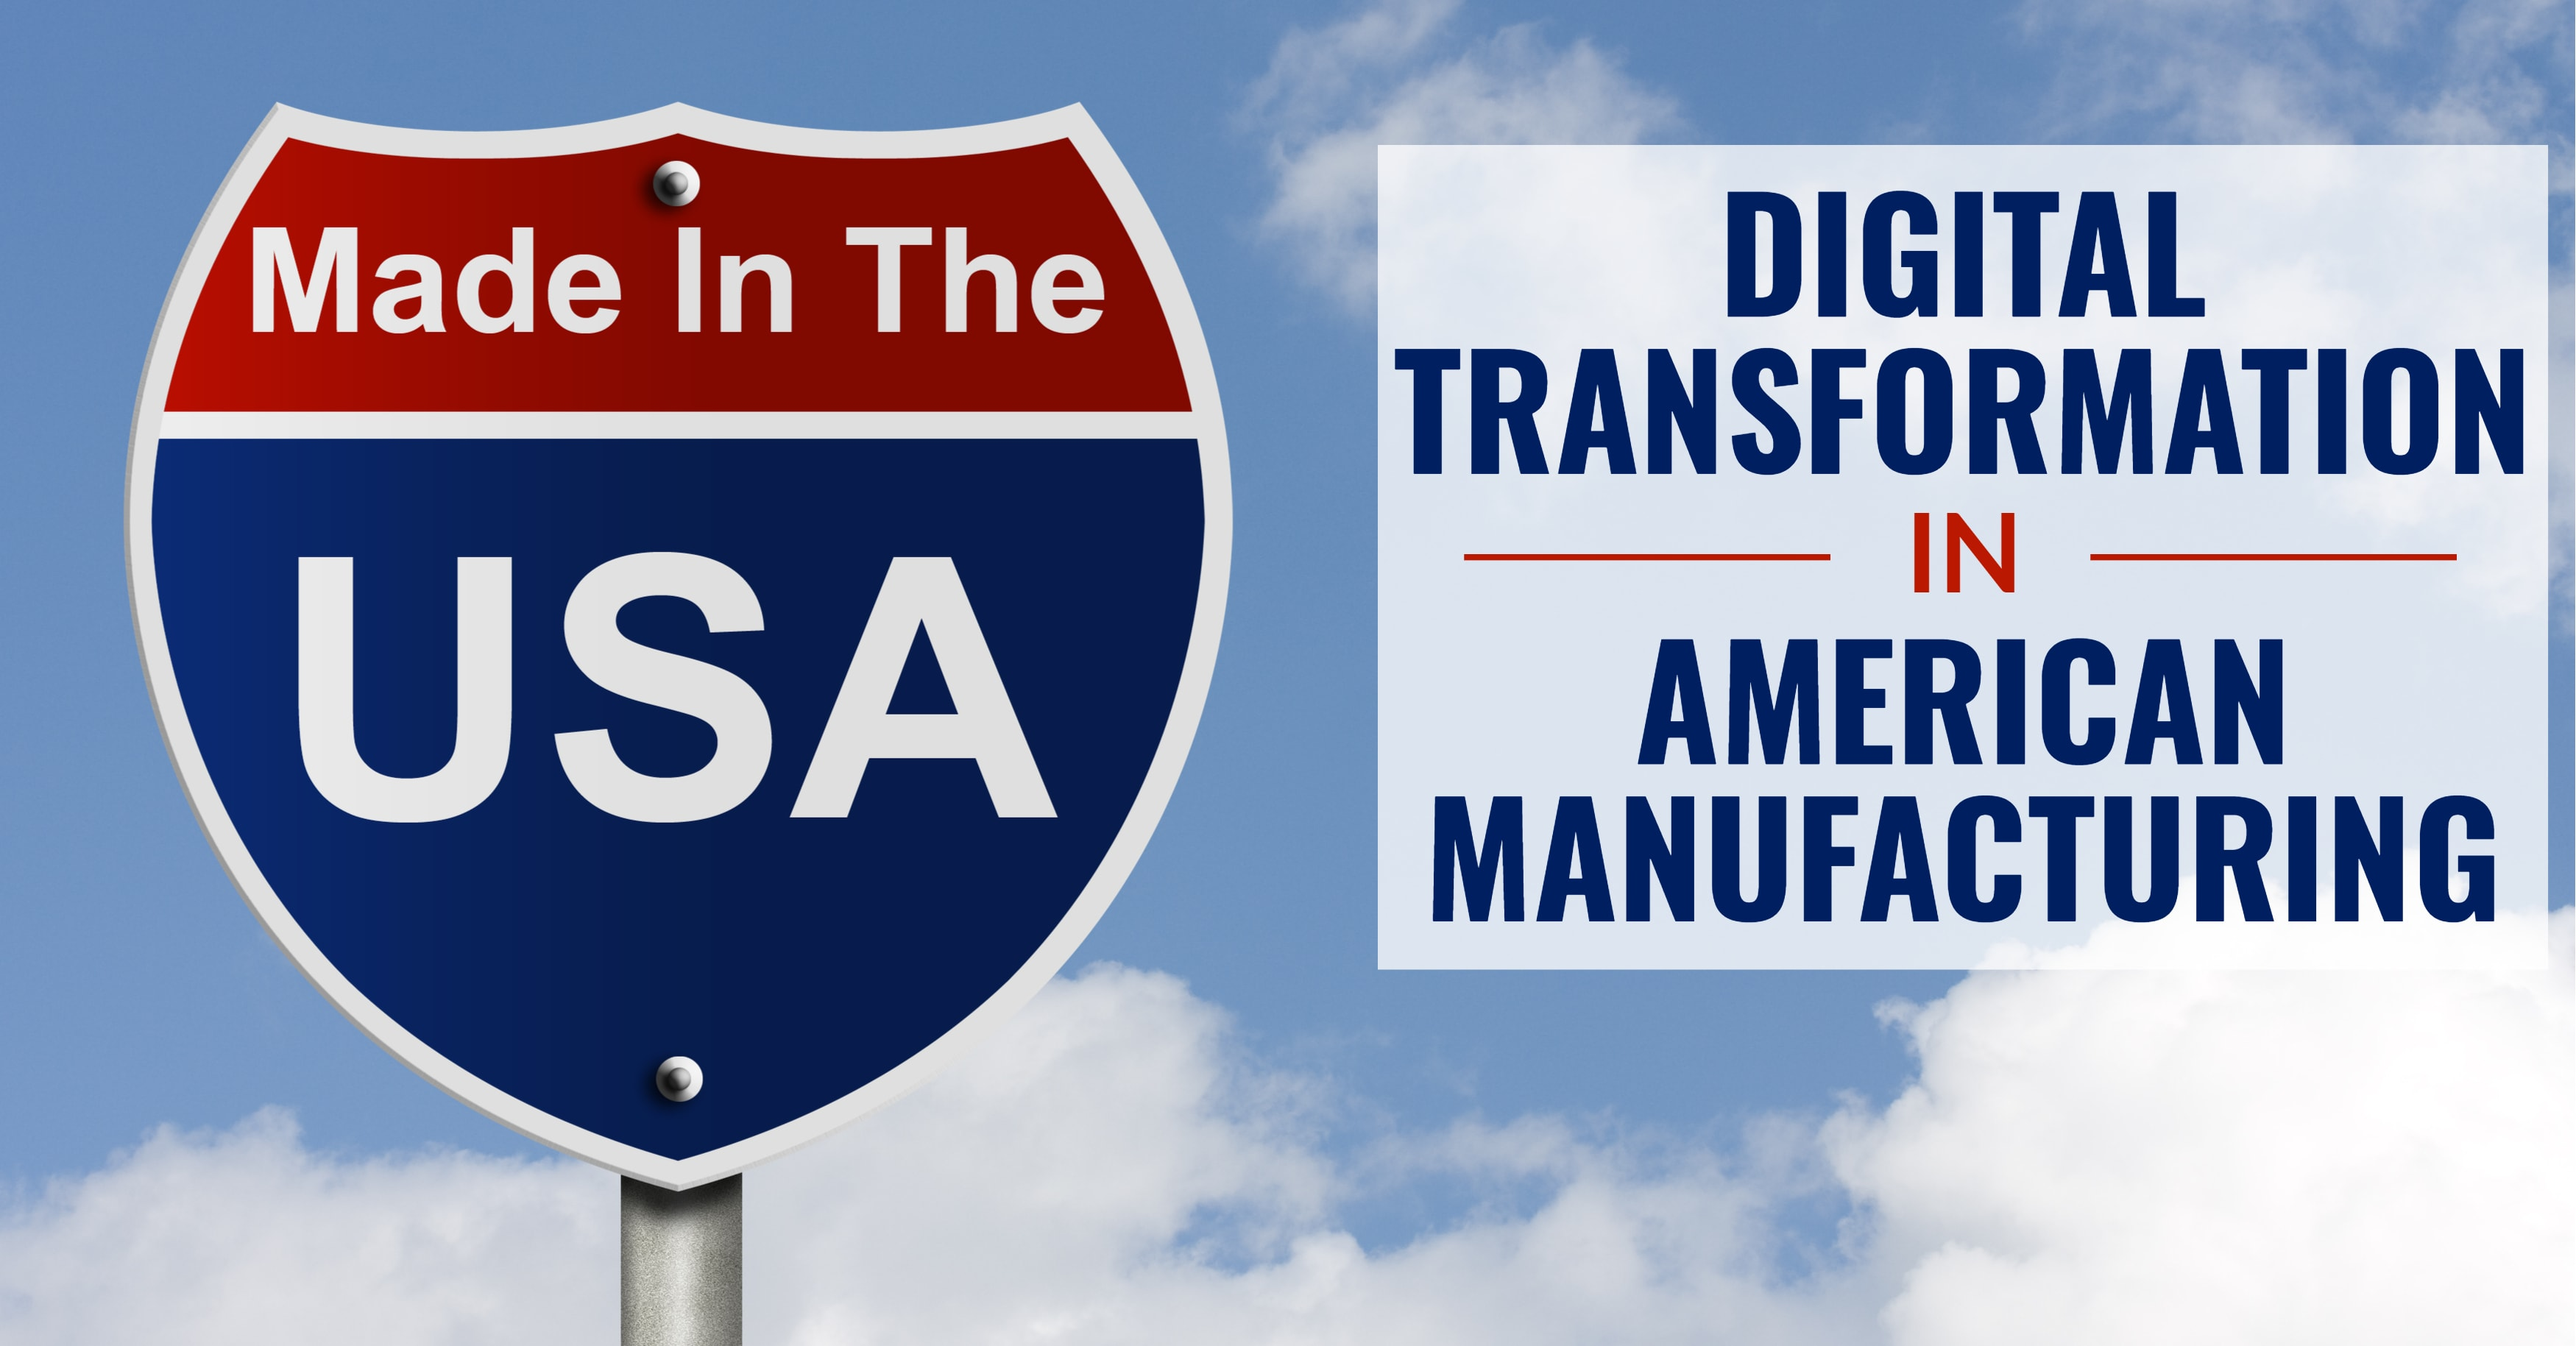 Digital Transformation in American Manufacturing